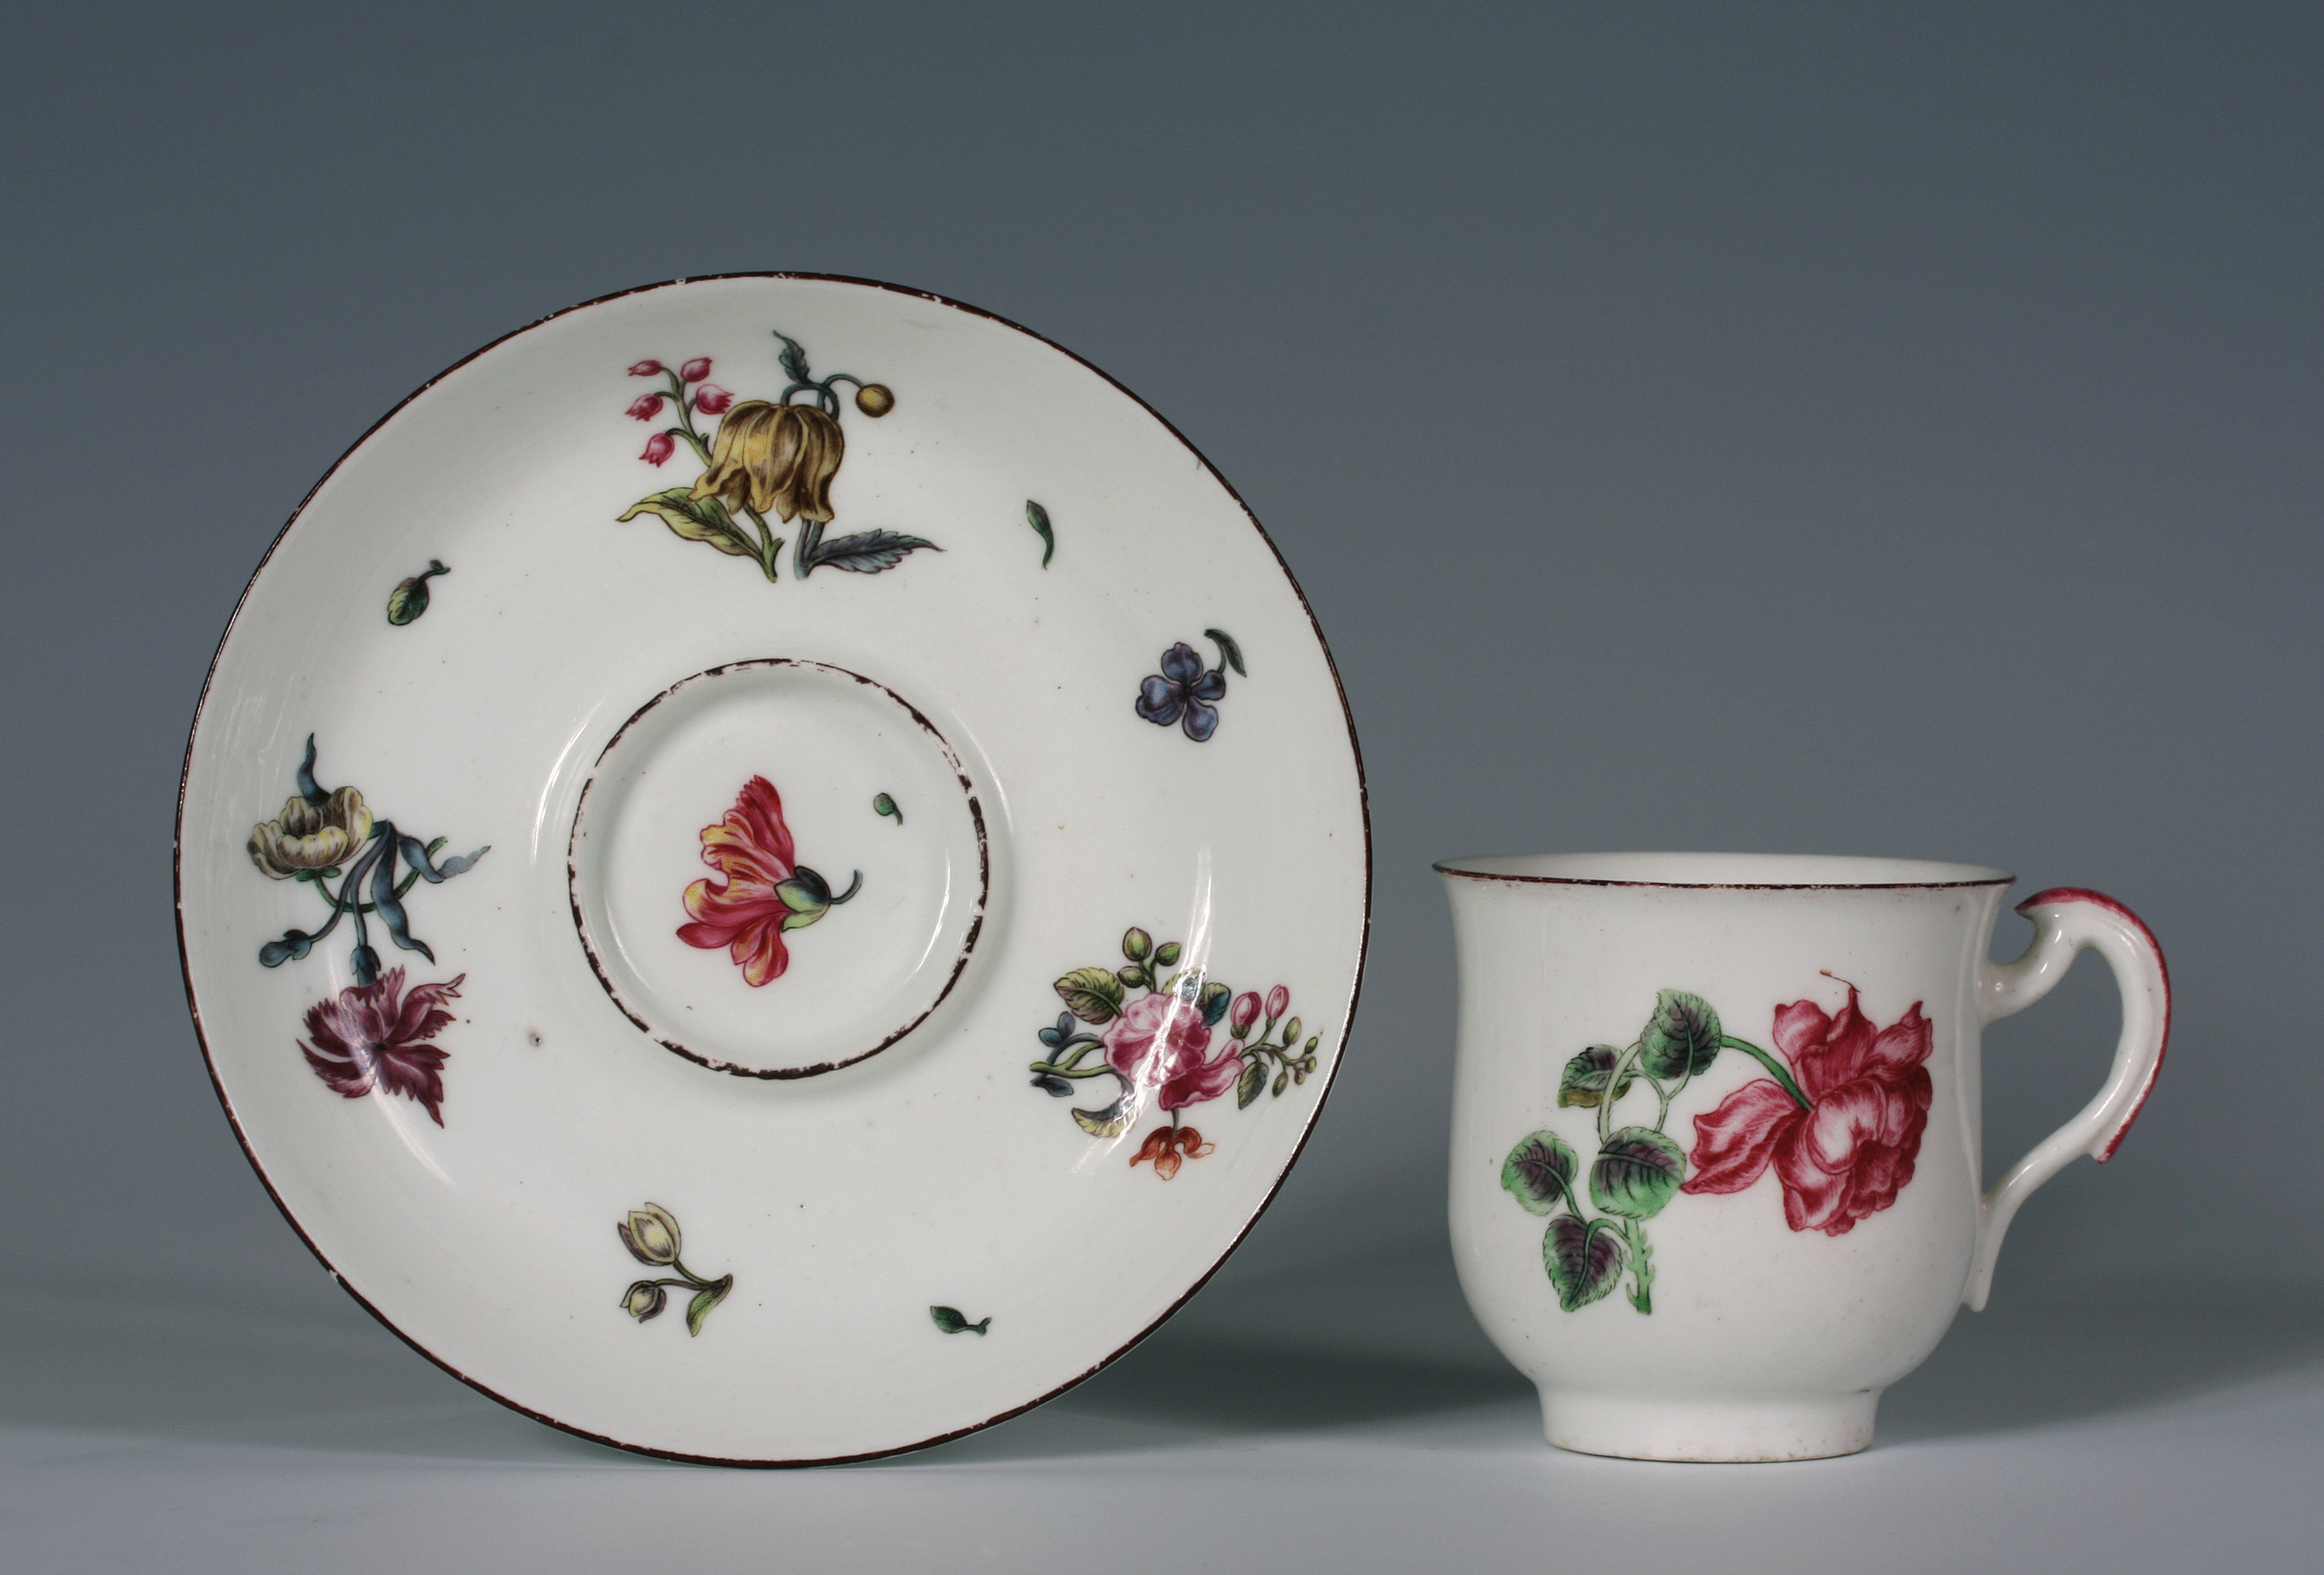 A very early Vincennes gobelet calabre and saucer